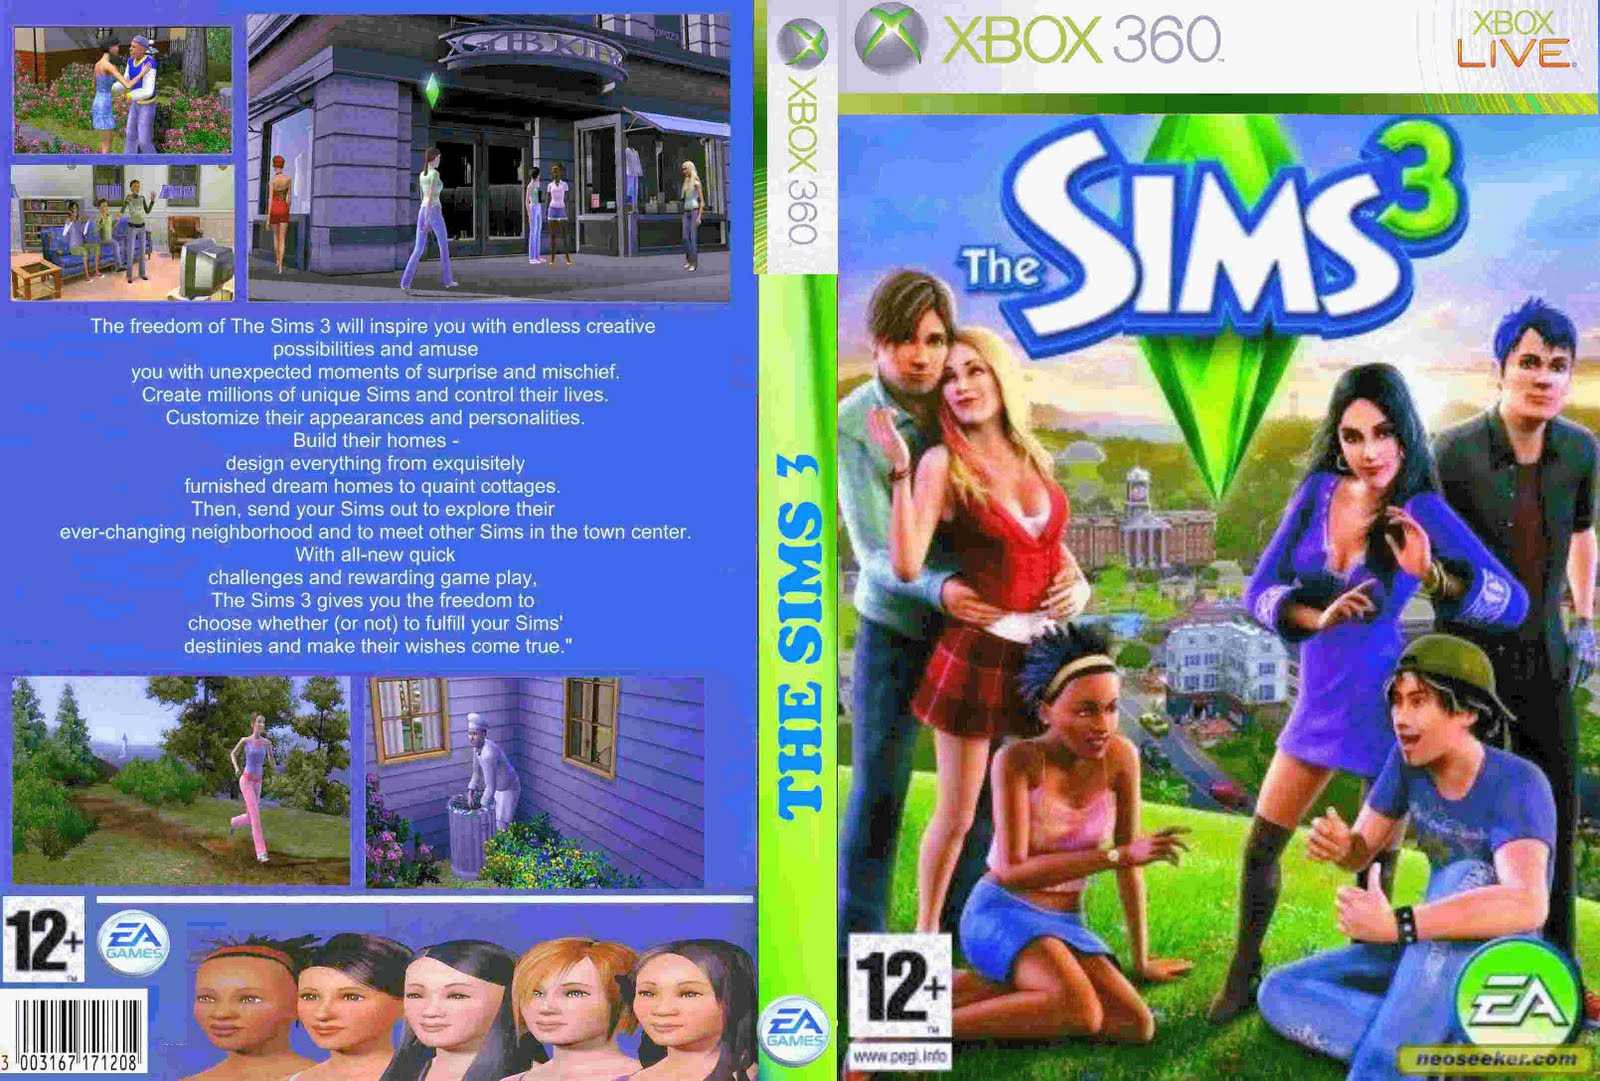 Luar games the sims 3 for Construire une maison sims 3 xbox 360